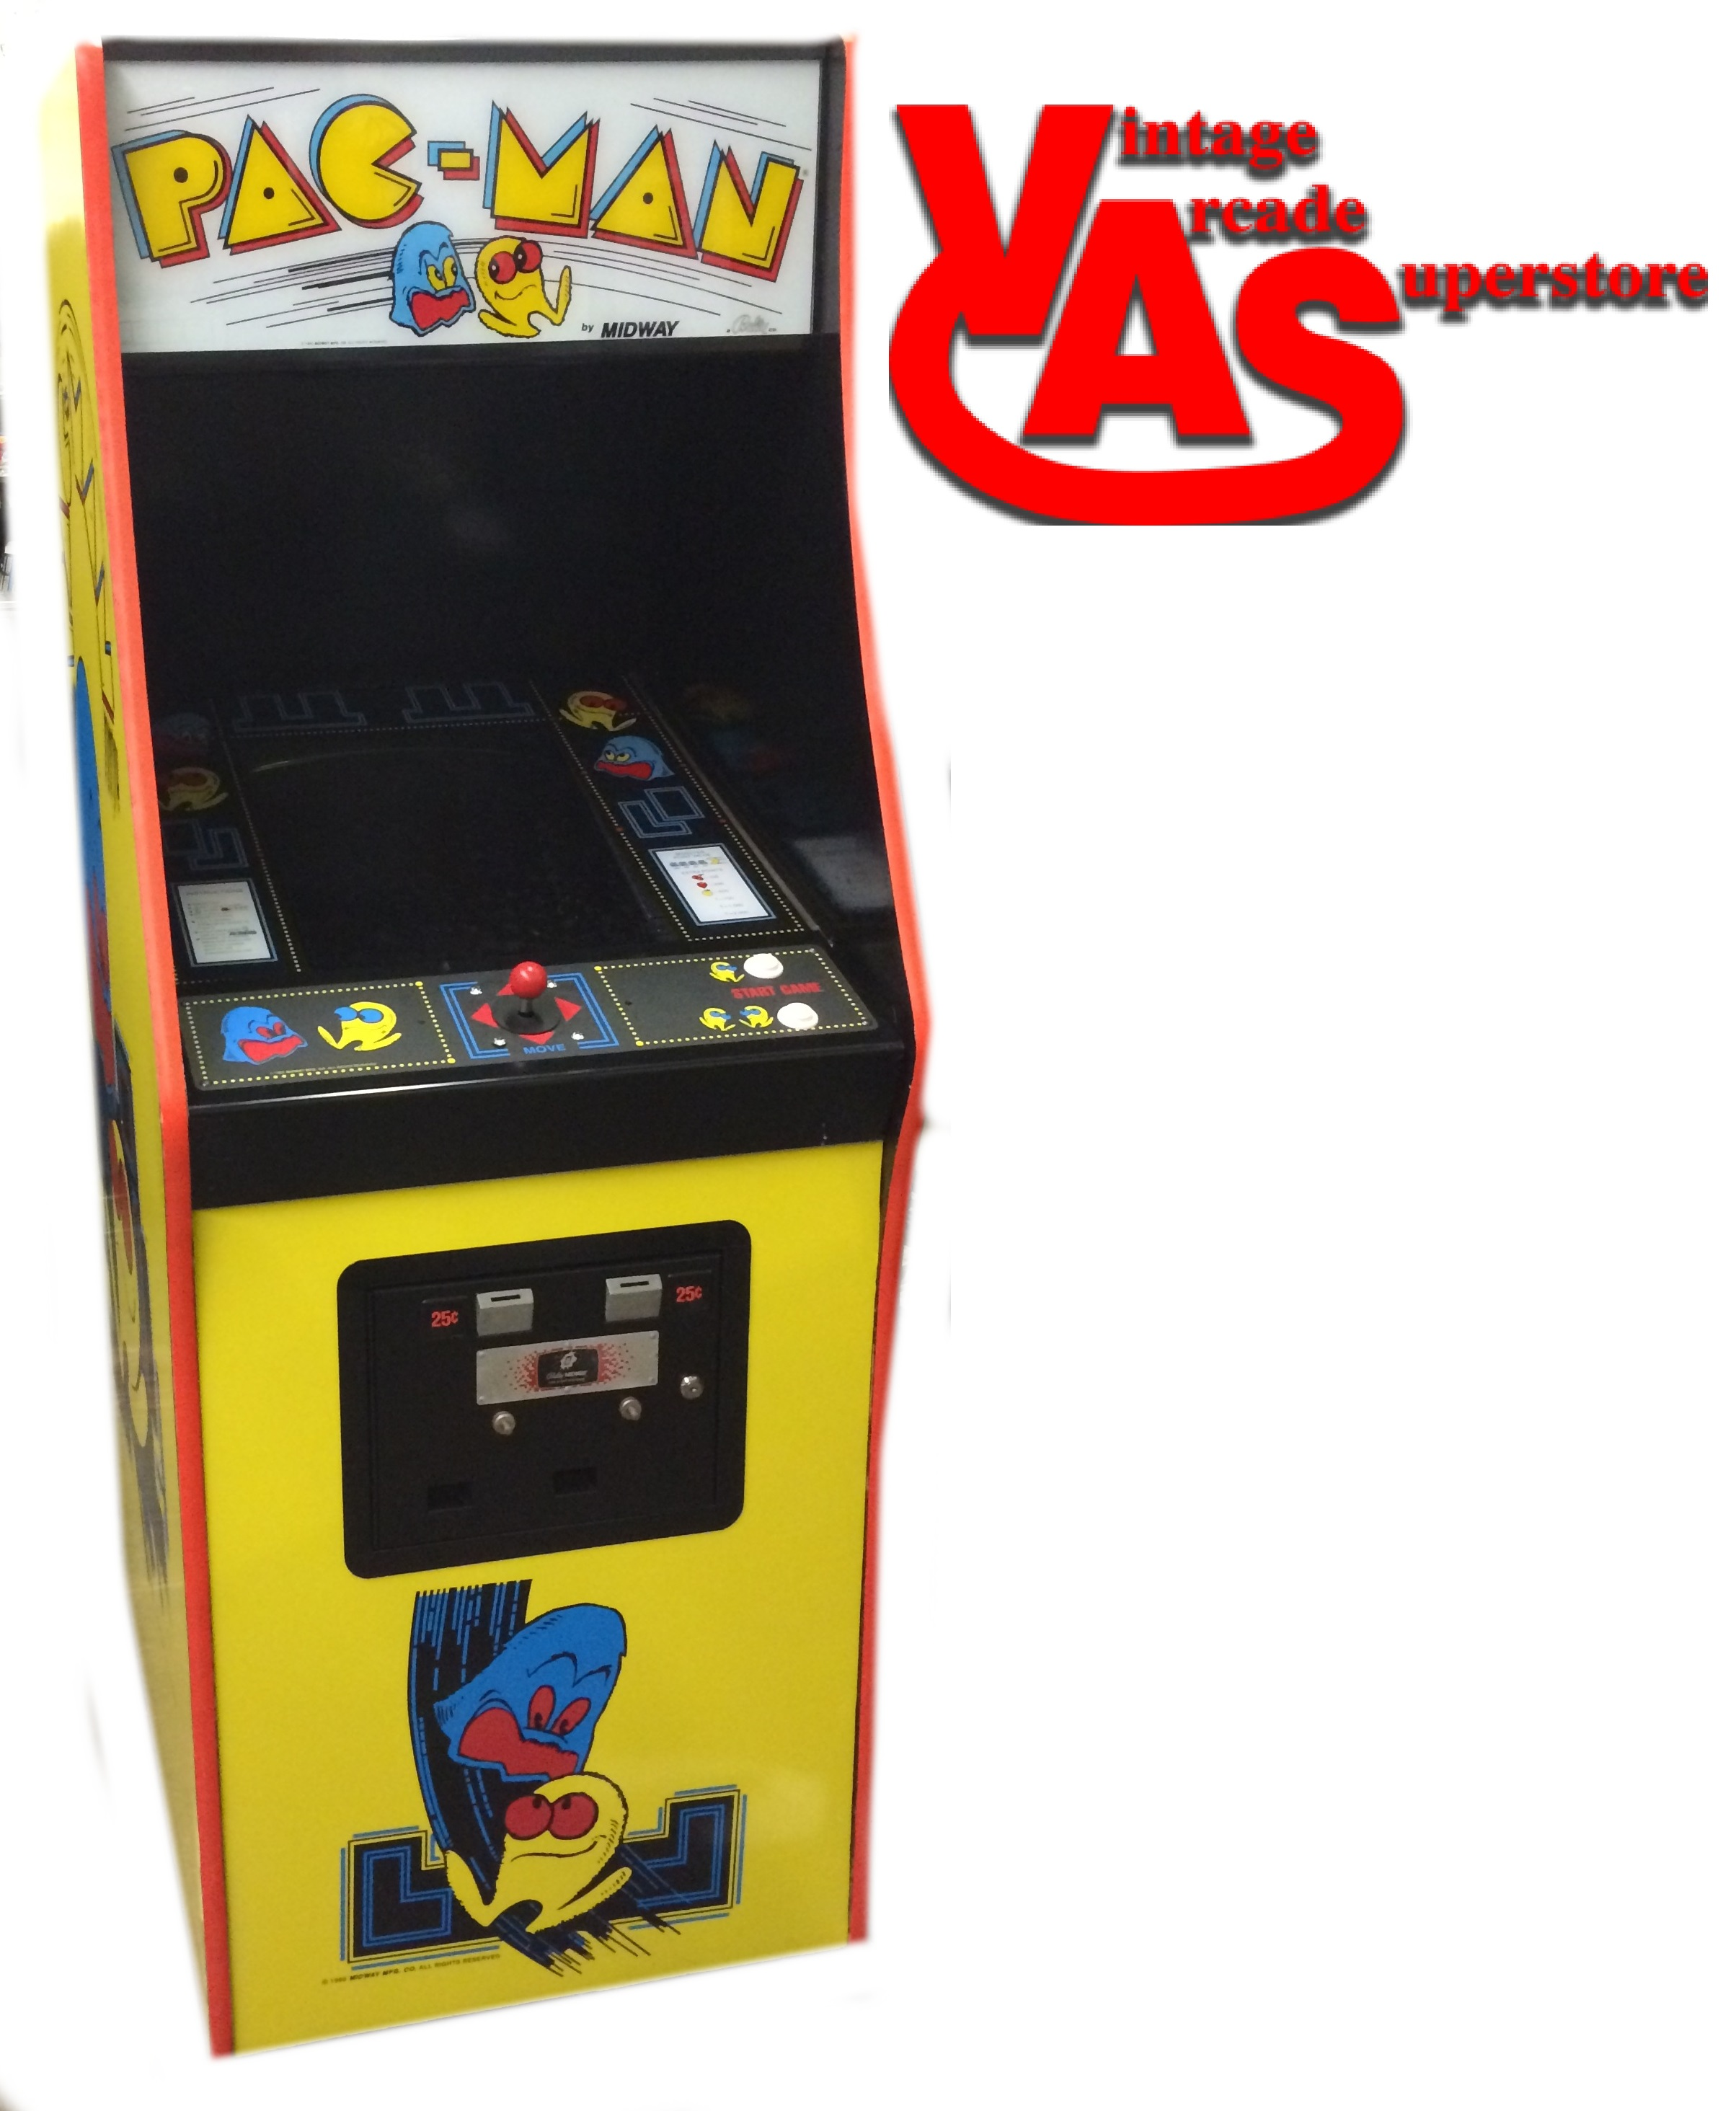 Image result for pacman video game machine